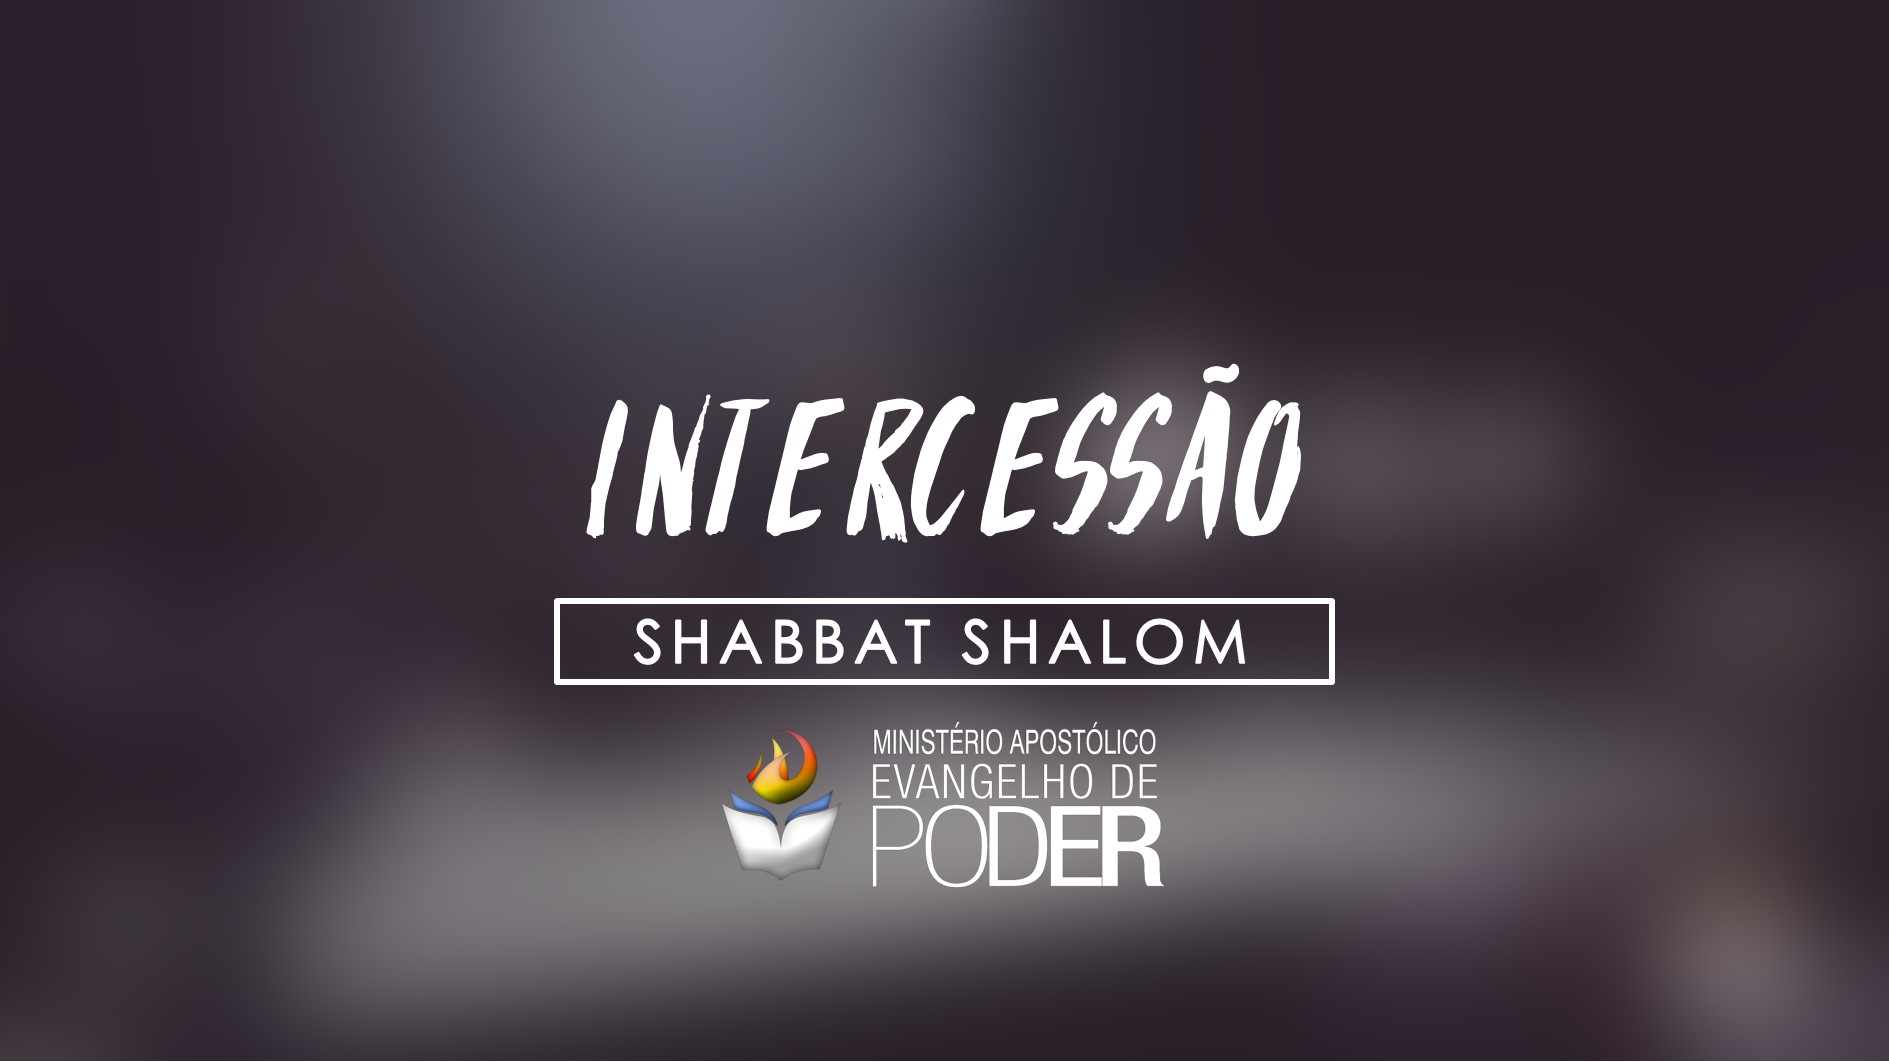 INTERCESSÃO - SHABAT SHALOM (04, Nov 2017)